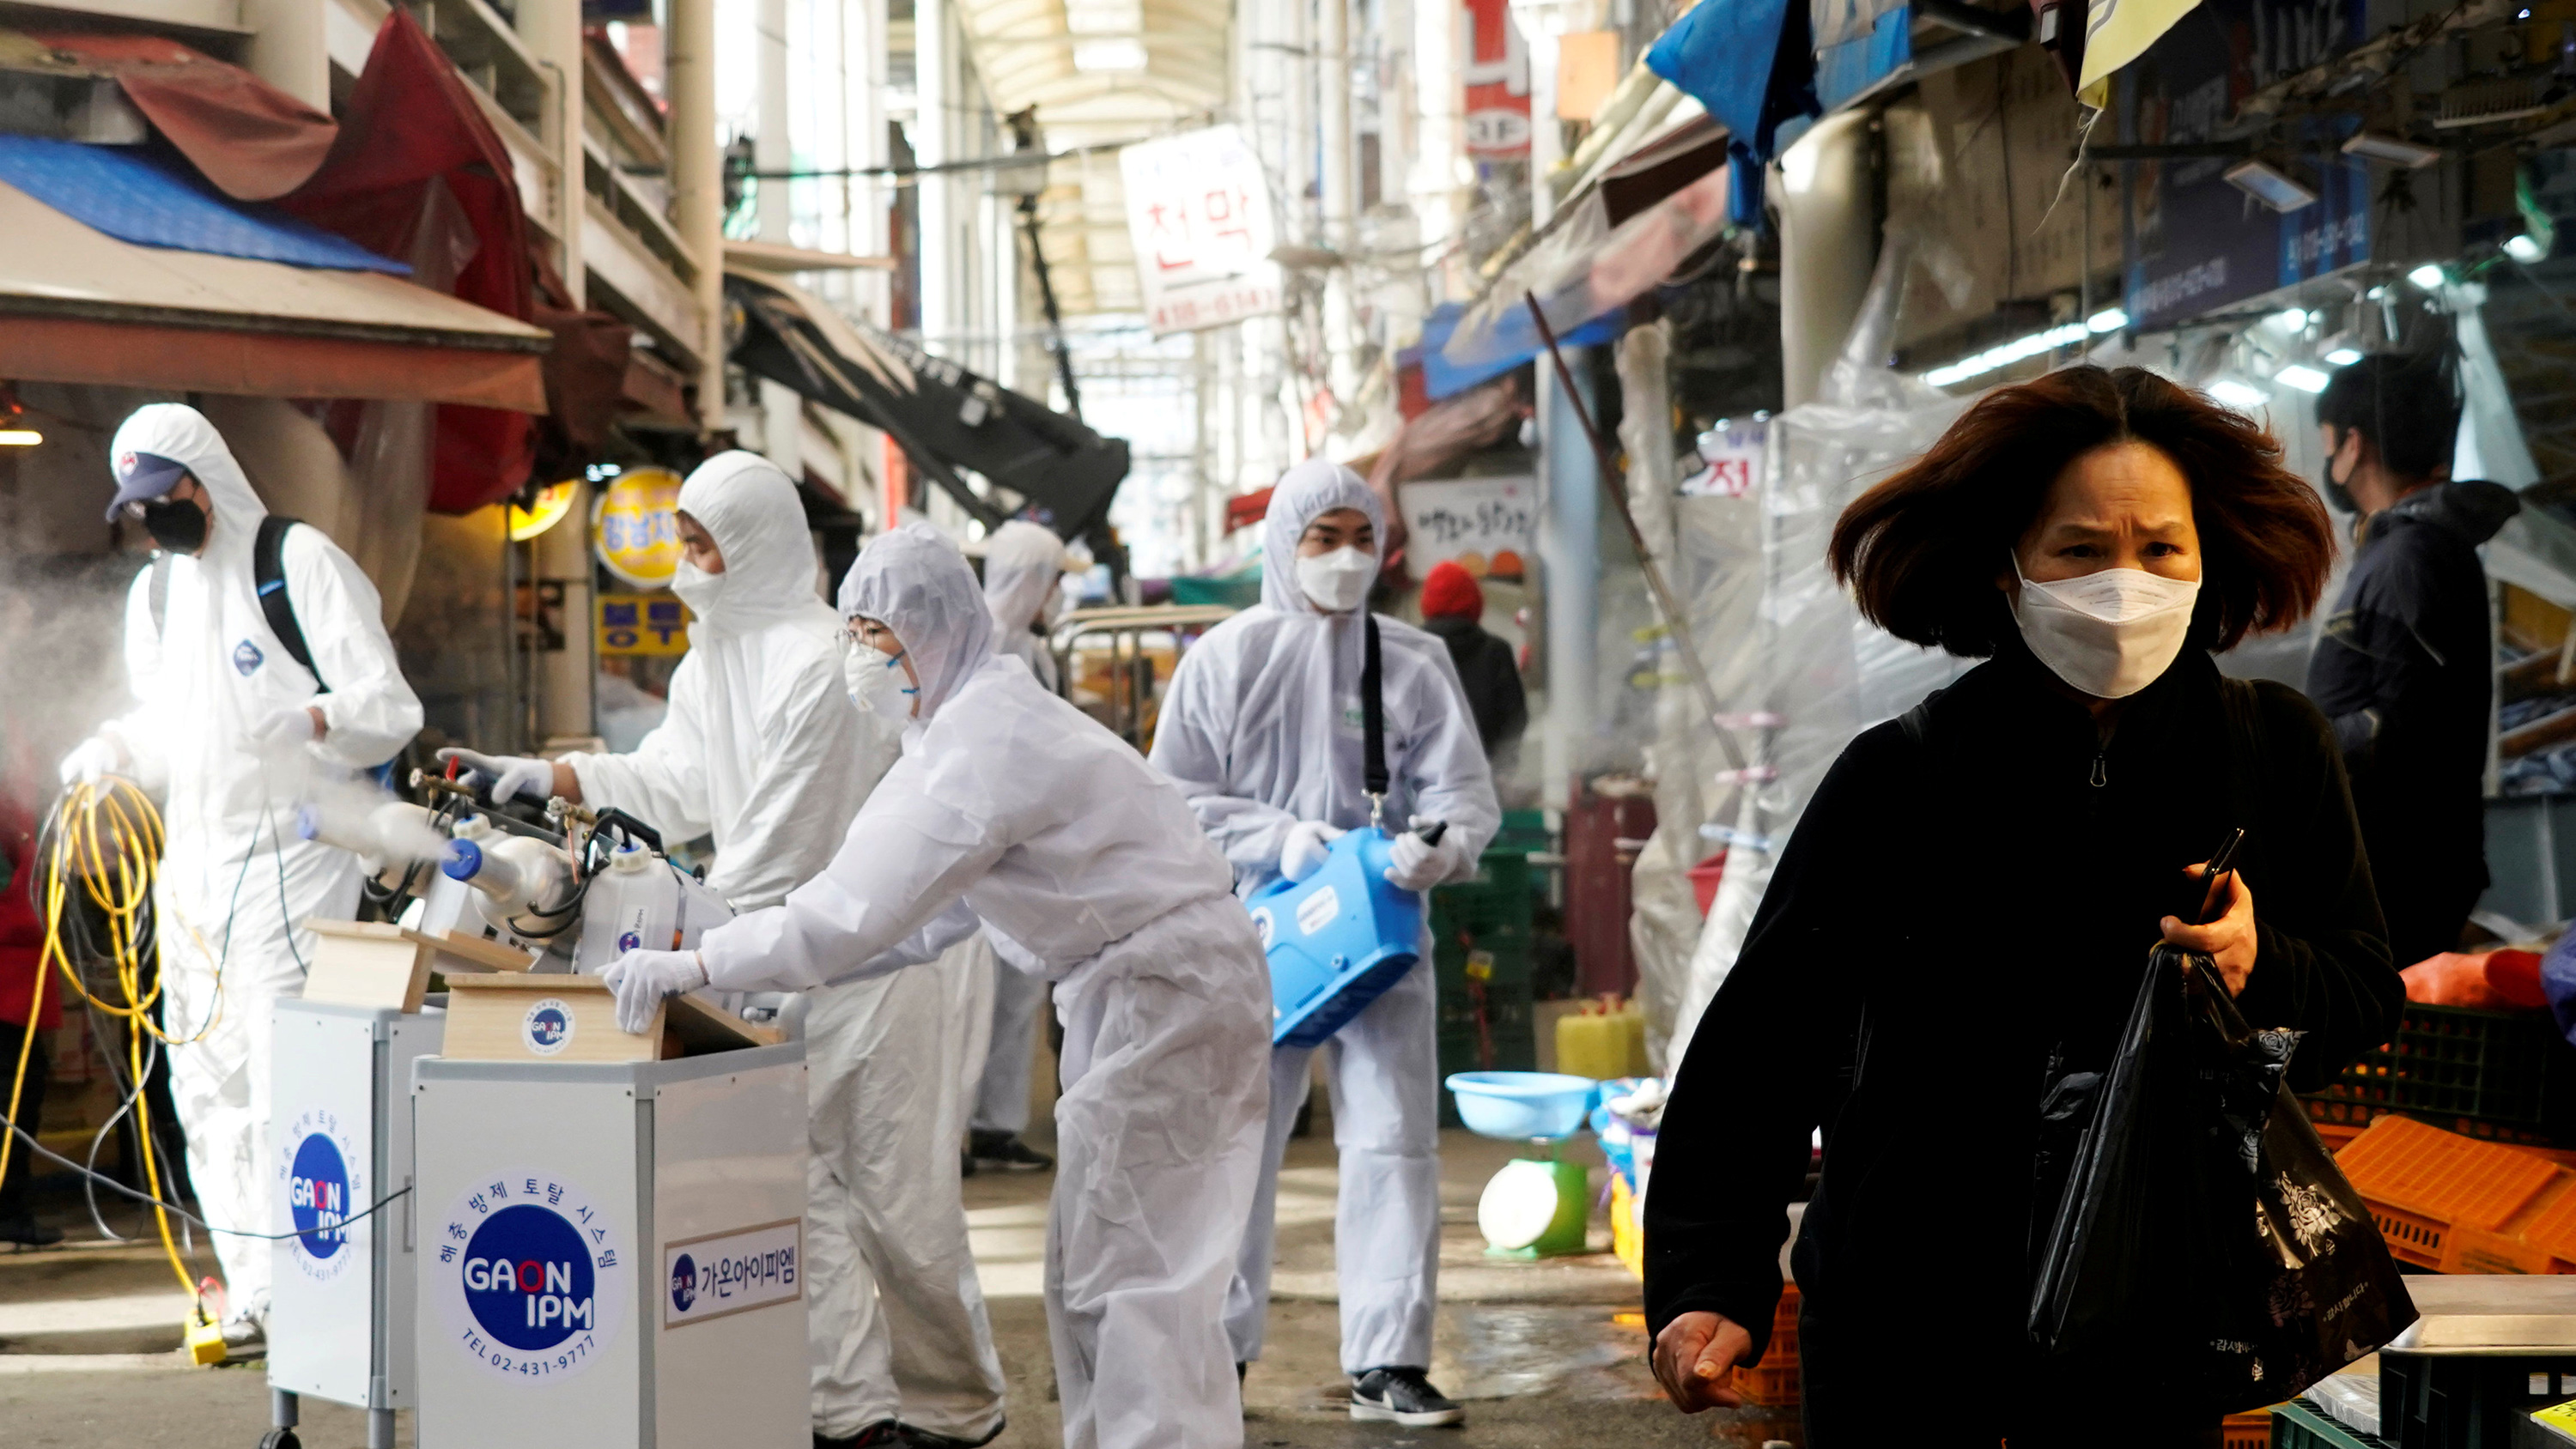 This is a striking image with a woman walking by a crew covered in protective gear spraying a substance on the streets of what looks like a normally busy market, now almost abandoned.